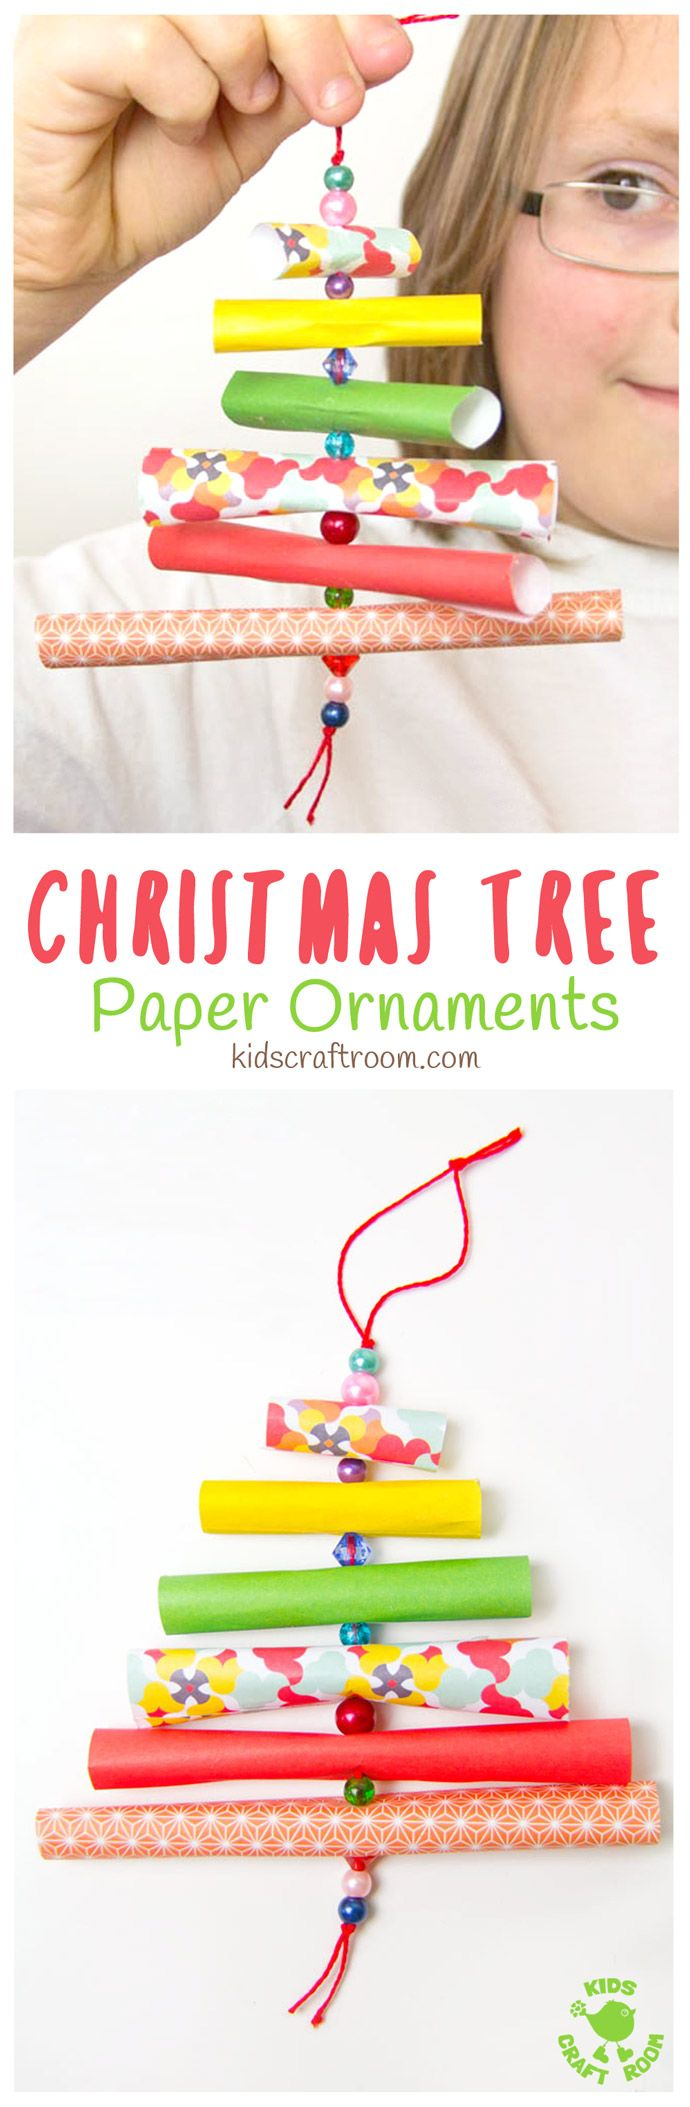 Christmas Tree Paper Ornaments - Have fun with paper & beads making adorable homemade Christmas ornaments in the shape of Christmas trees. Pretty enough for grown-ups, simple enough for kids! #christmas #christmascrafts